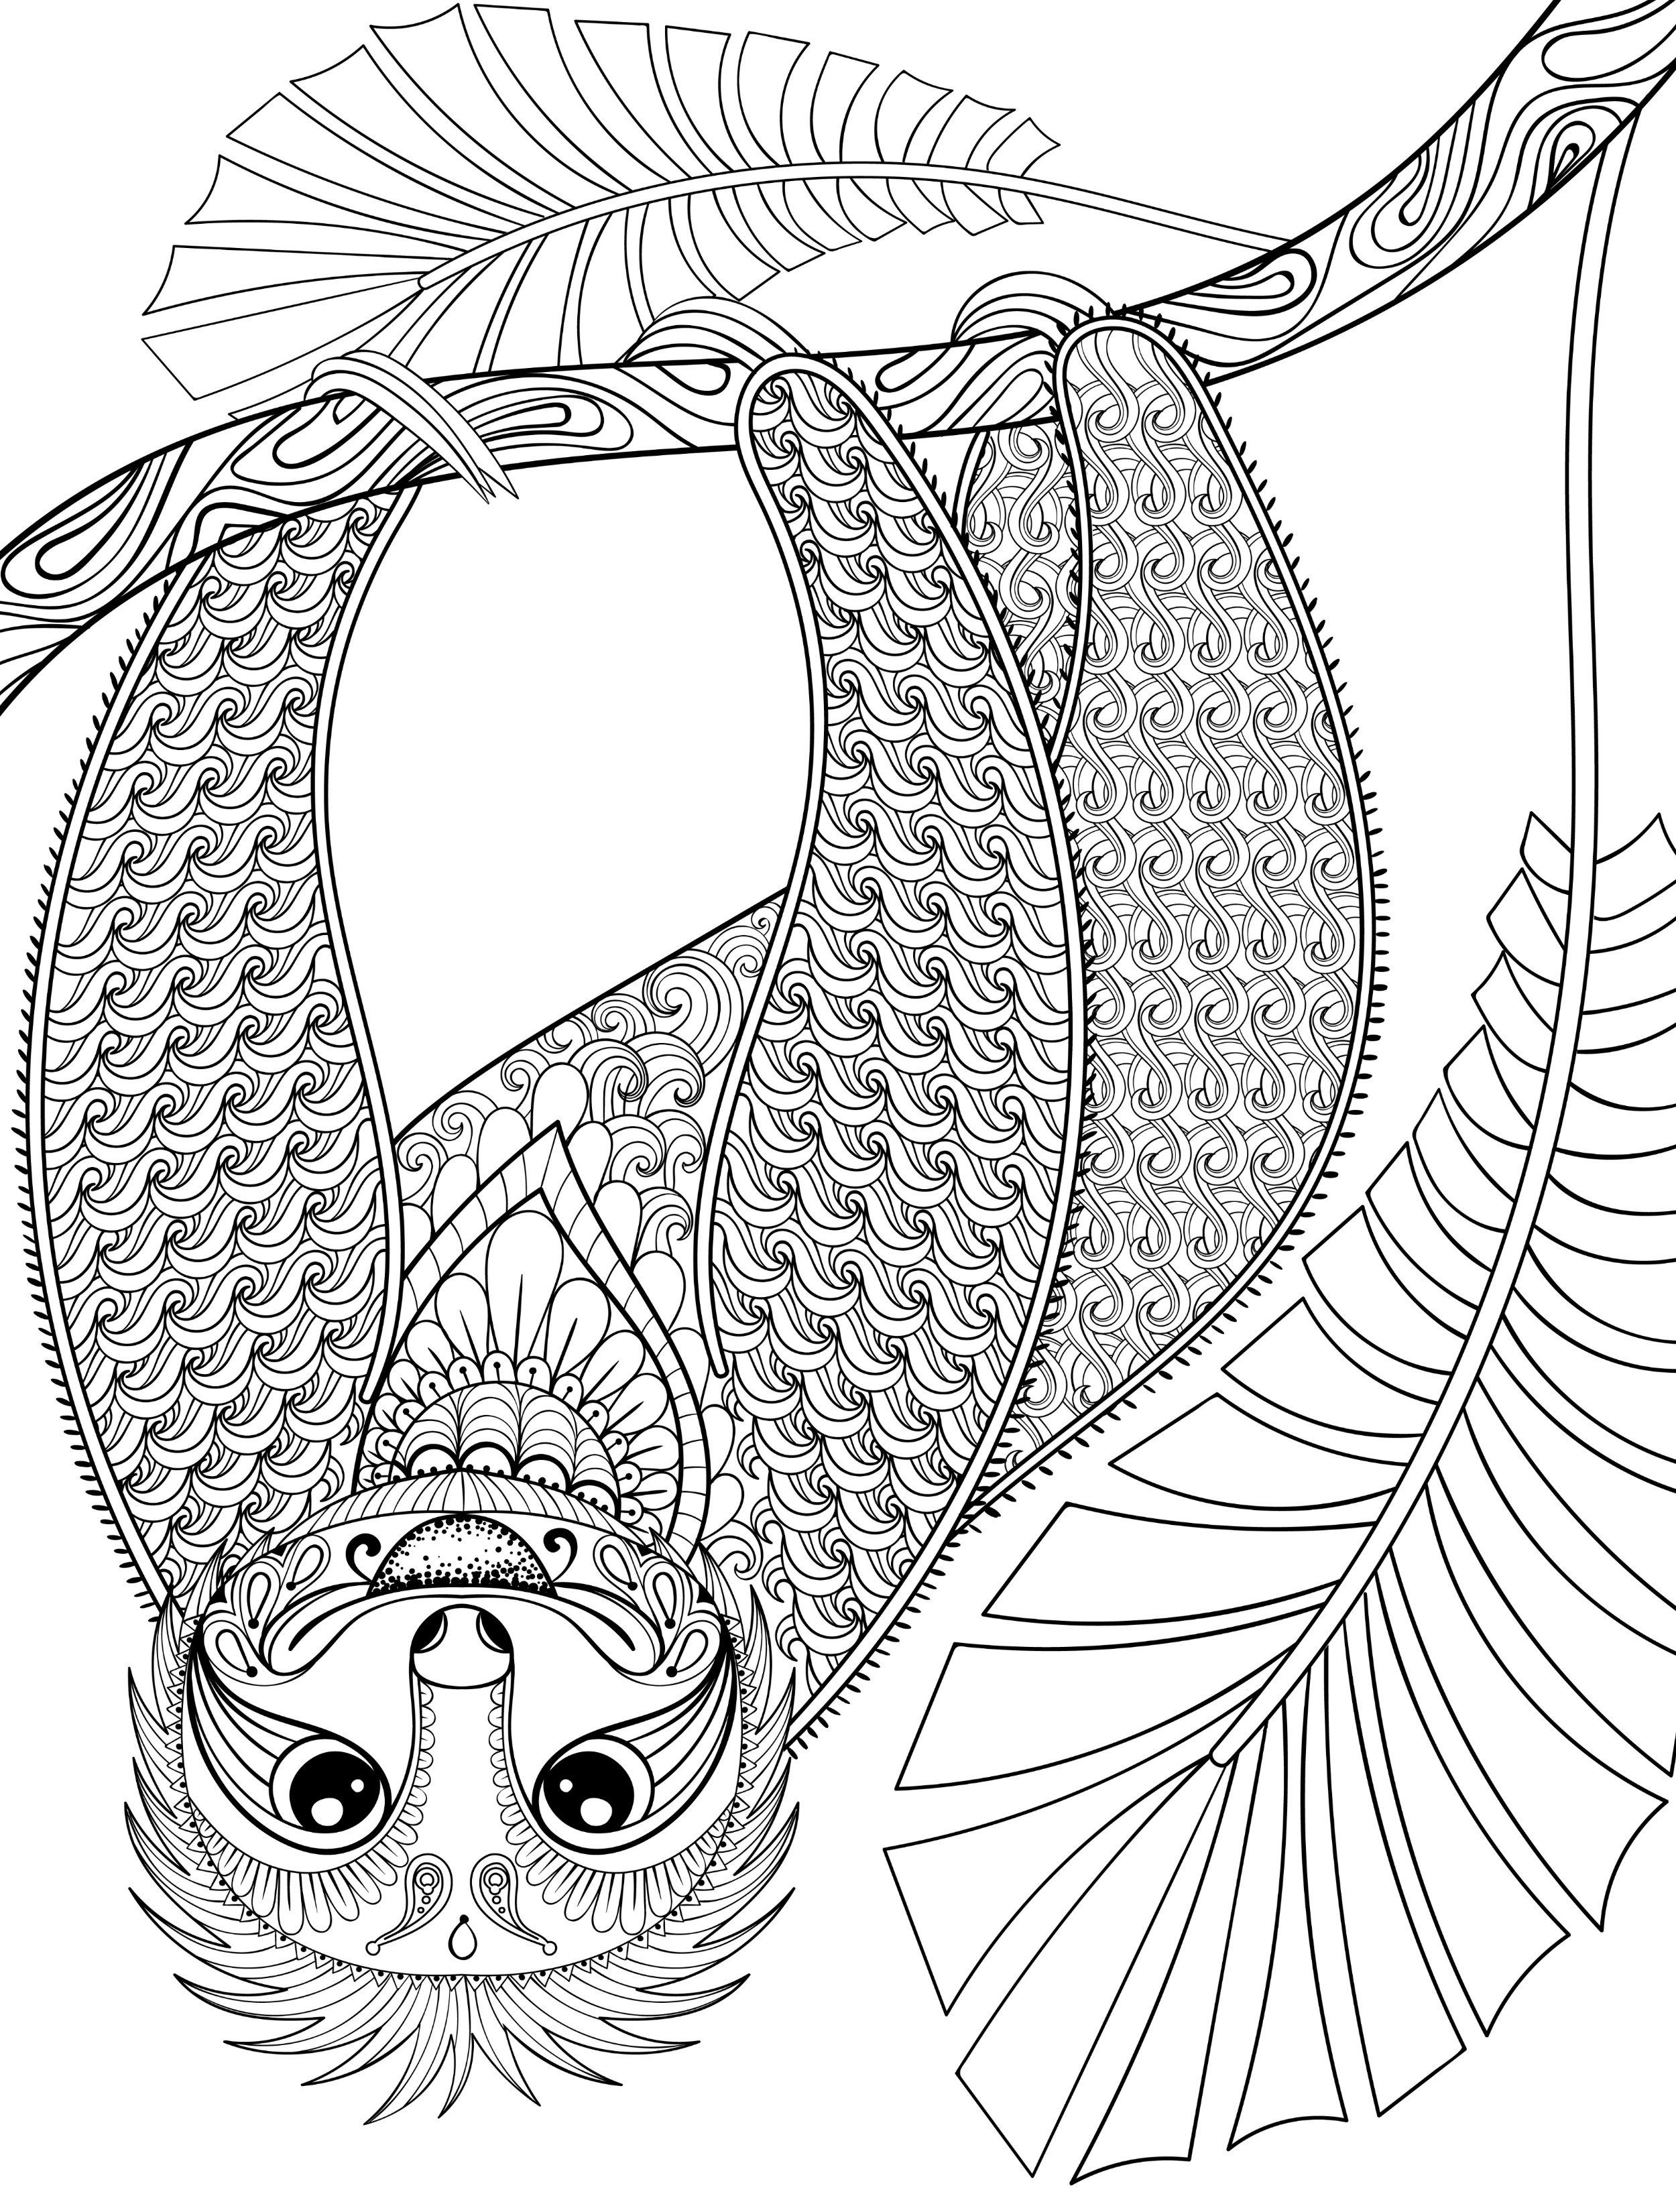 Free whimsical coloring pages for adults - 18 Absurdly Whimsical Adult Coloring Pages Page 15 Of 20